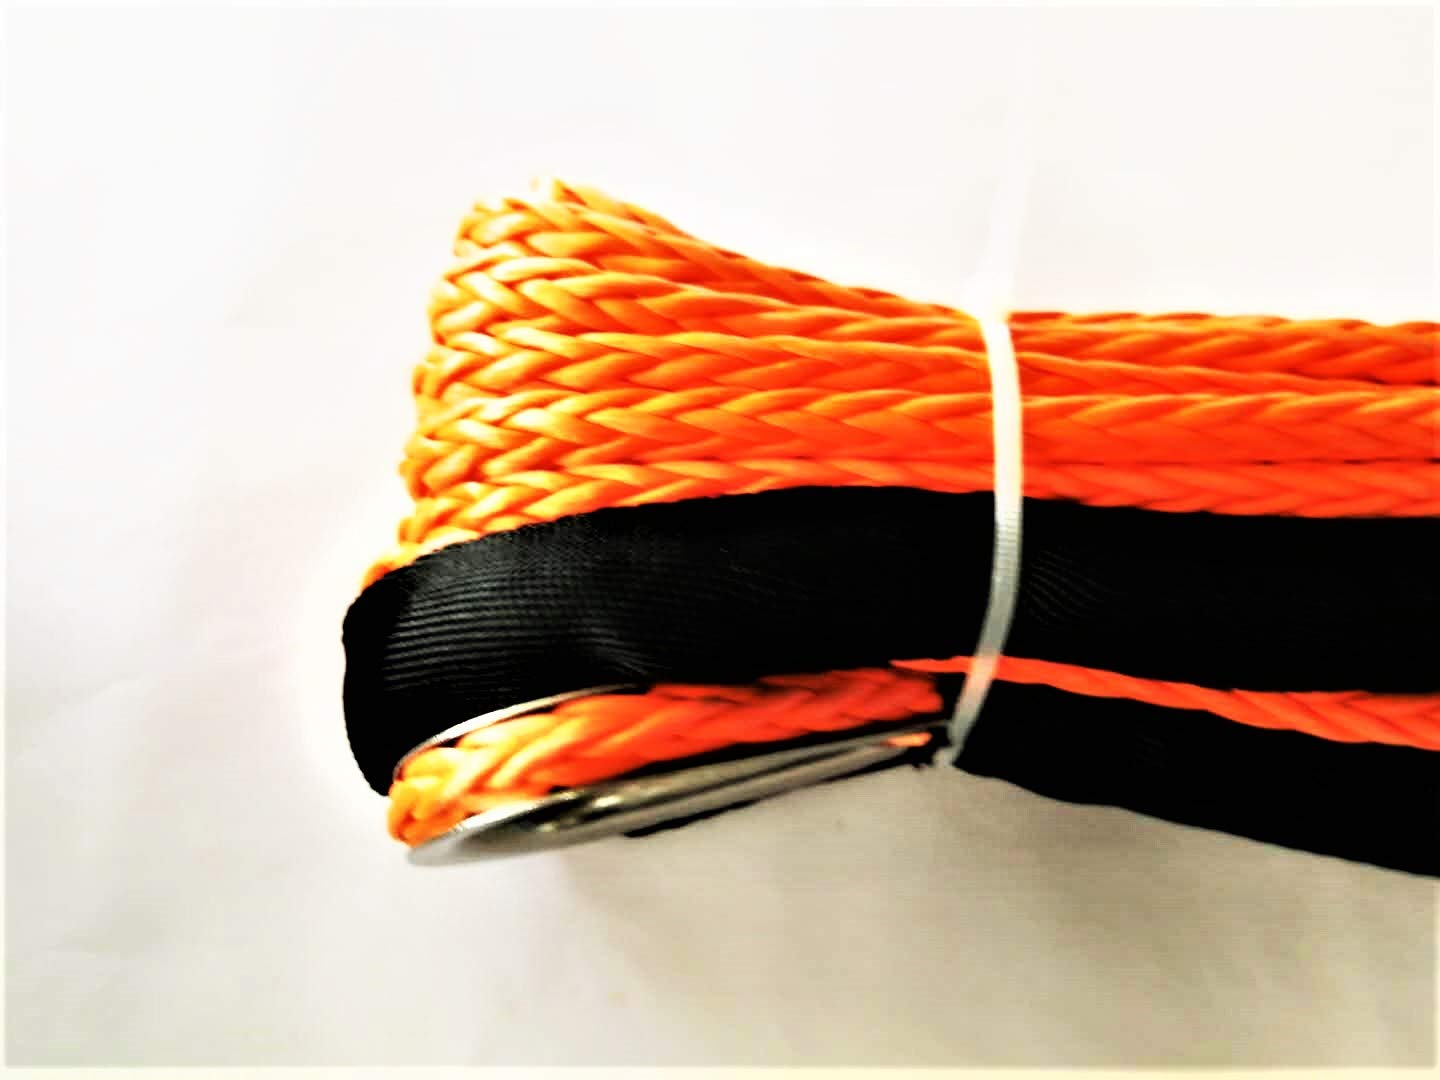 Jutemill Synthetic Winch Rope - 1/2'' x 50' Feet Winch Cable Orange Winch Rope 23700 LBs with Sheath for ATVs Winches ATV UTV SUV Truck Boat Ramsey Synthetic Winch Rope